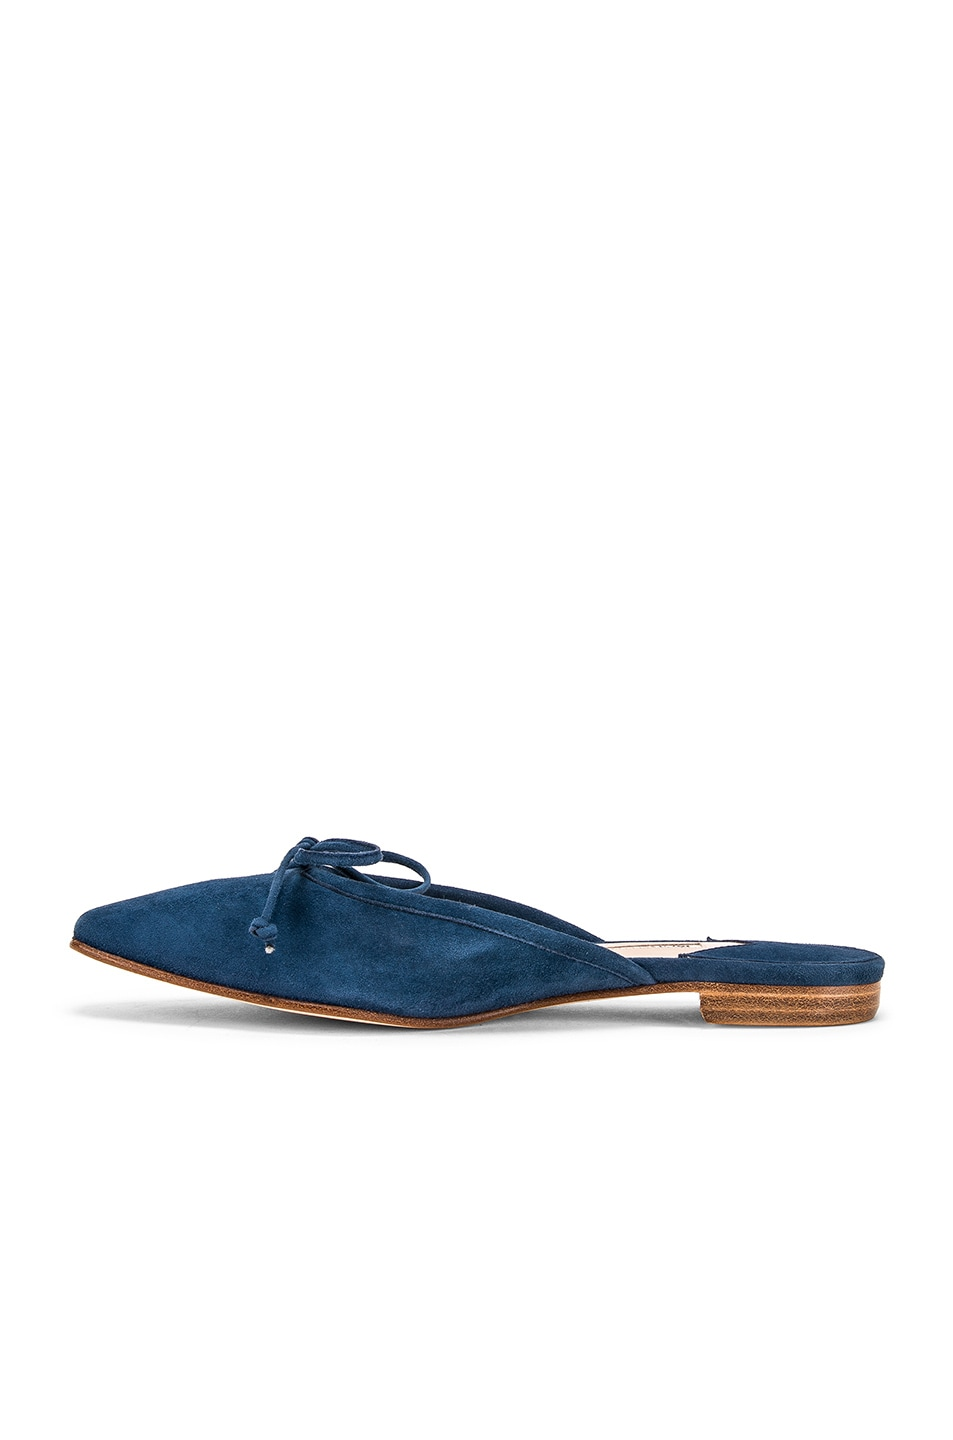 Image 5 of Manolo Blahnik Ballerimu Slide in Blue Suede